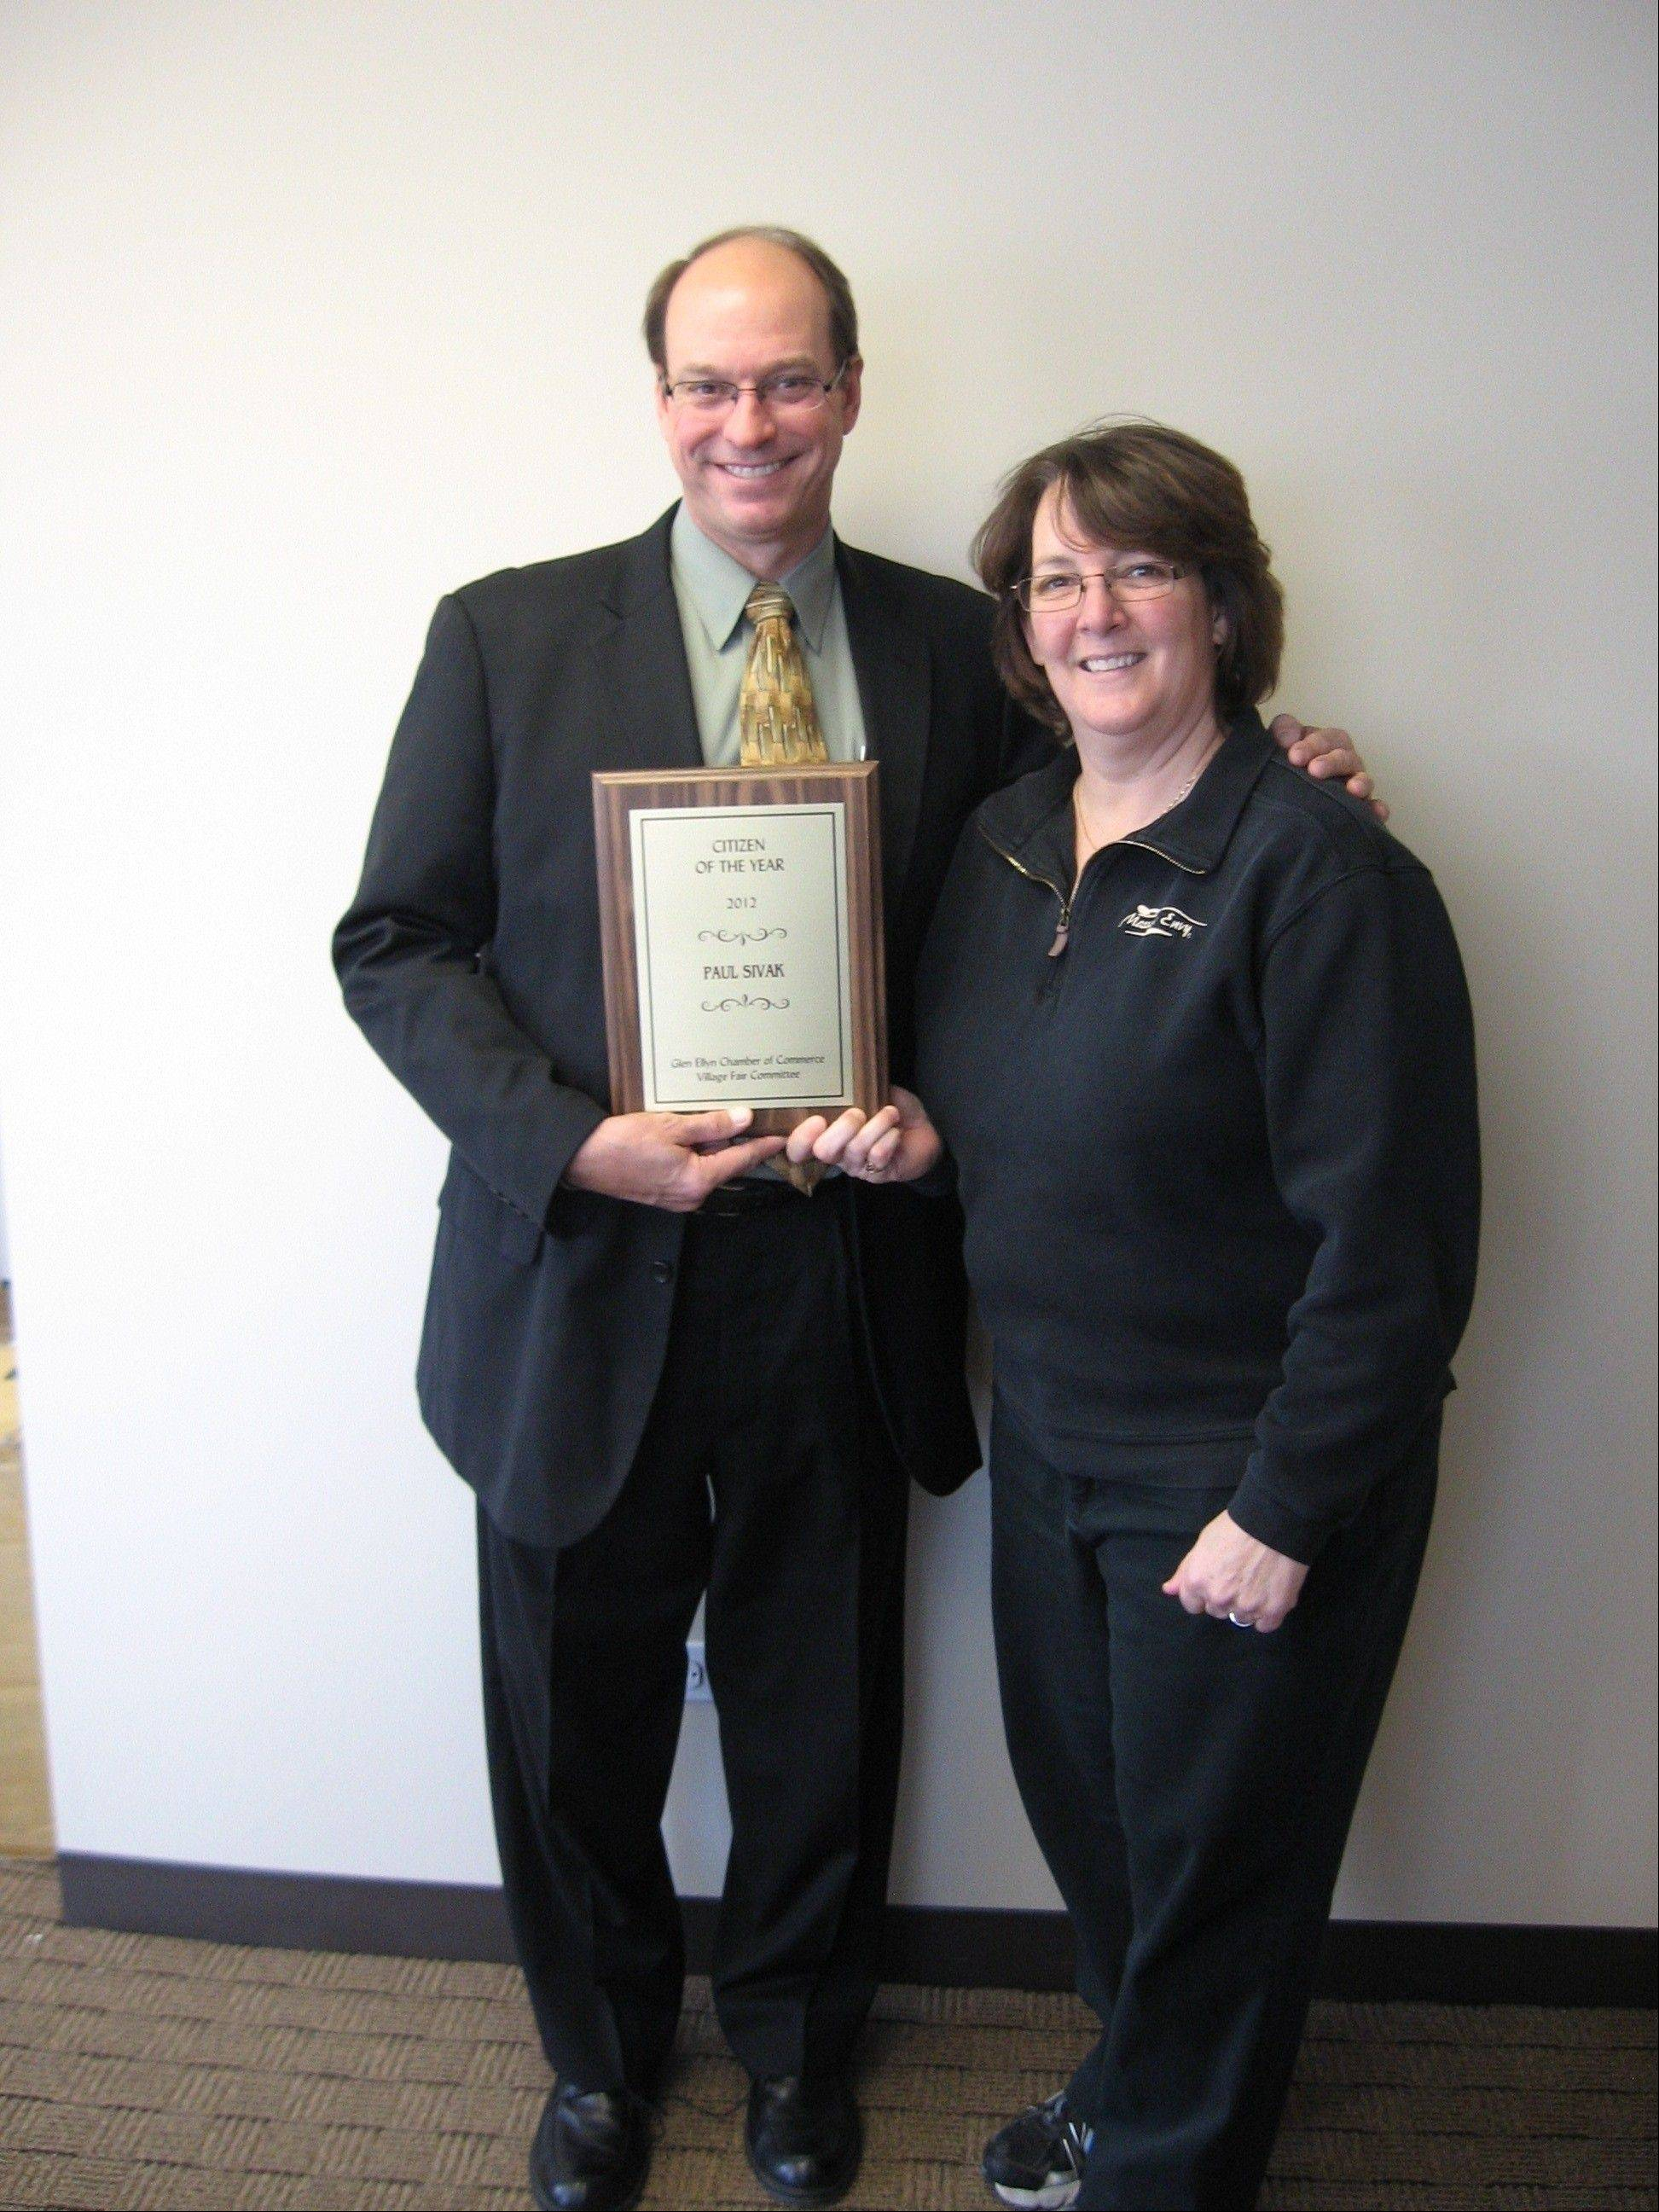 Paul Sivak of Precision Payroll and the 2012 president of the Glen Ellyn Chamber of Commerce was awarded Citizen of the Year at the Glen Ellyn Community Awards. He is pictured with Katie Cass of Massage Envy Spa, the chamber�s 2013 president.